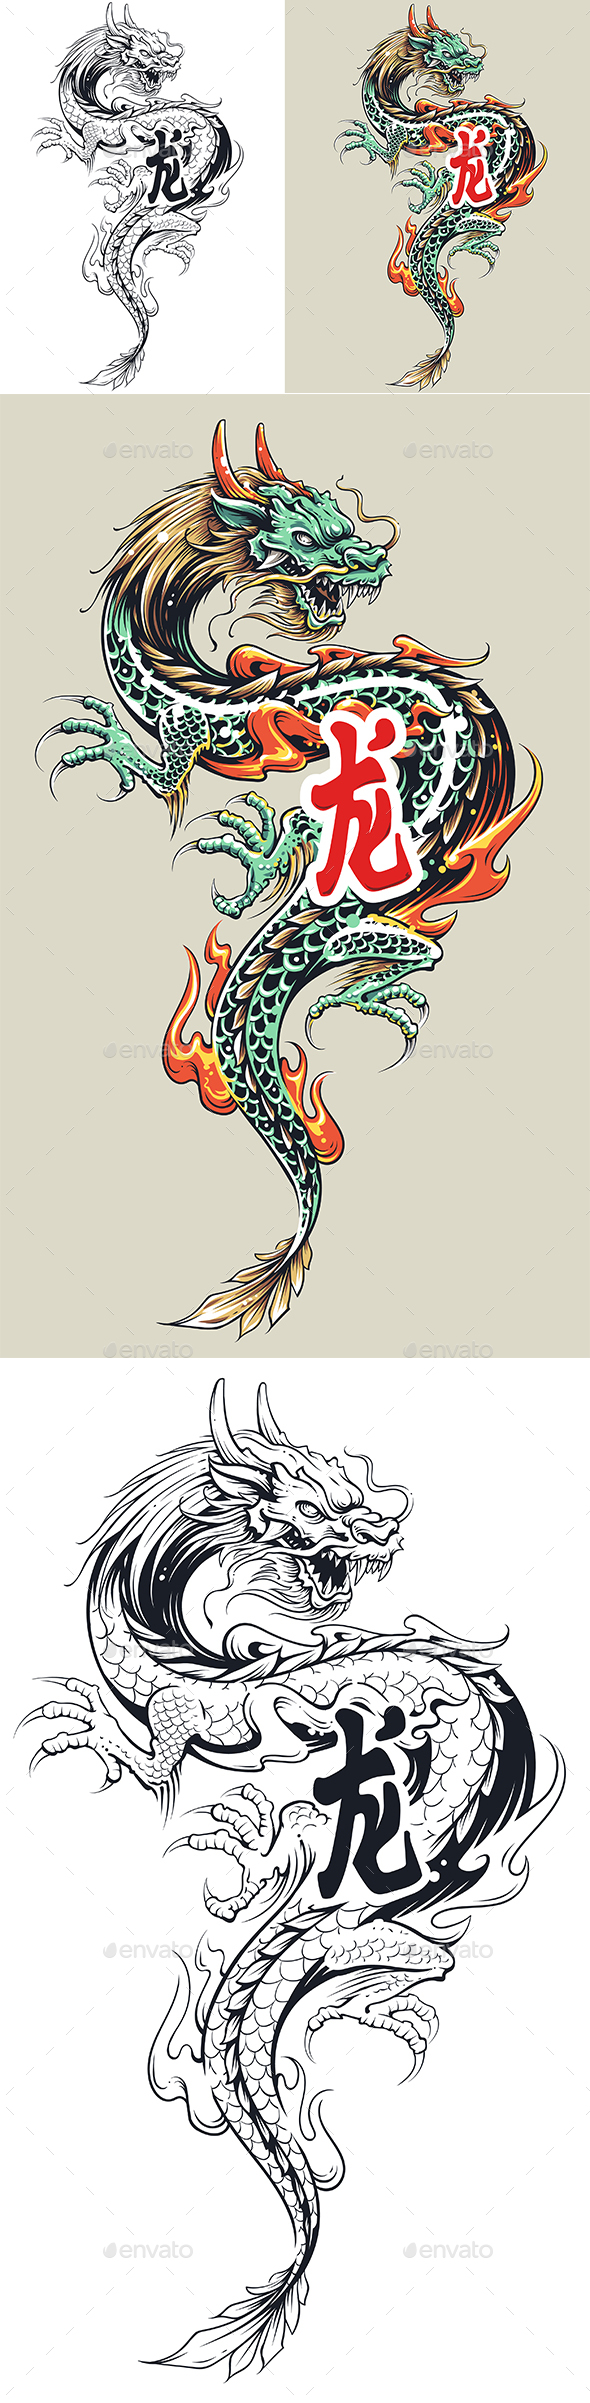 Dragon Tattoo Art - Tattoos Vectors